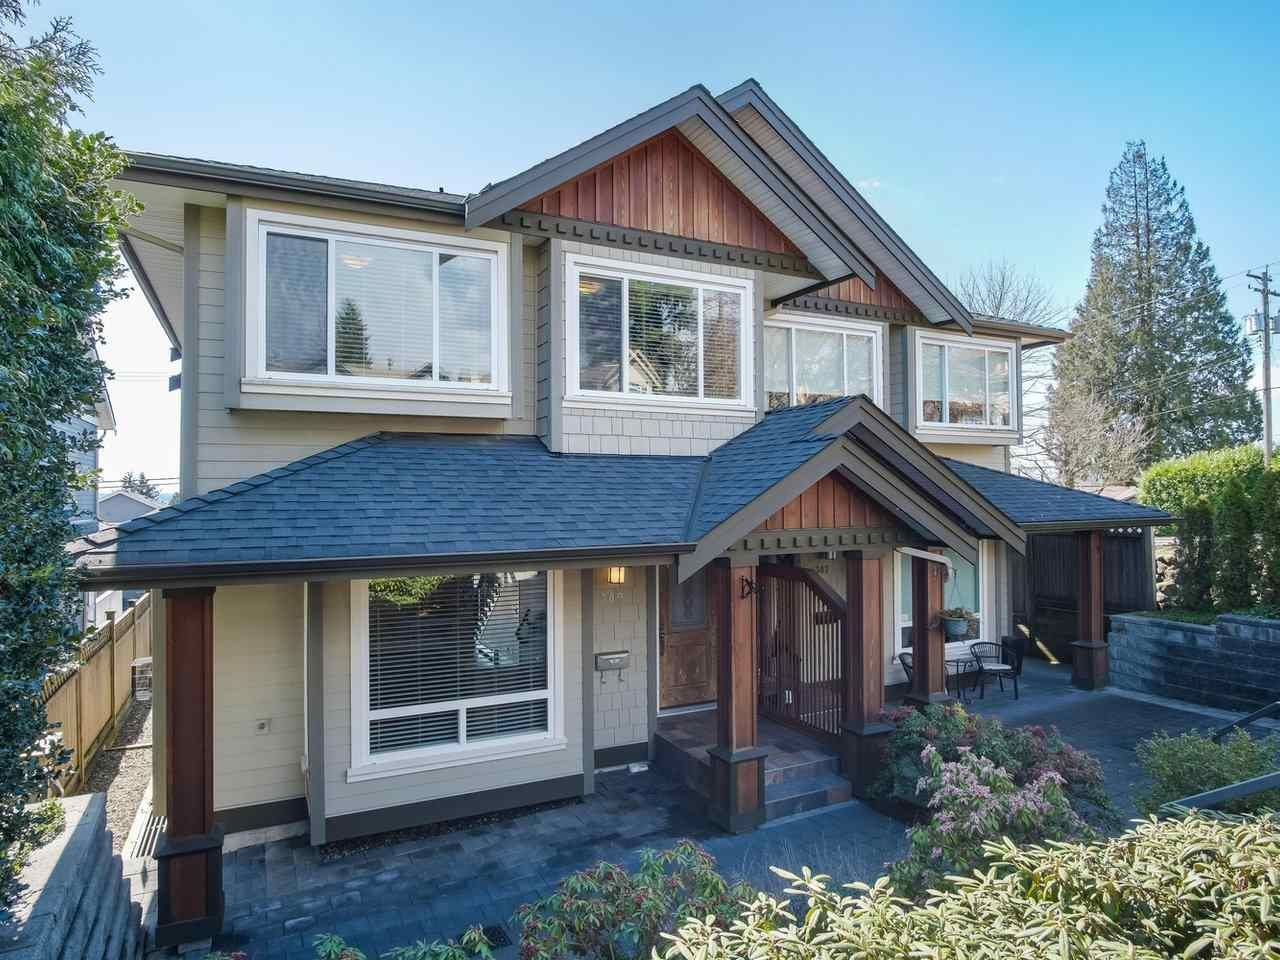 Main Photo: 309 E 6 STREET in : Lower Lonsdale 1/2 Duplex for sale : MLS®# R2447363